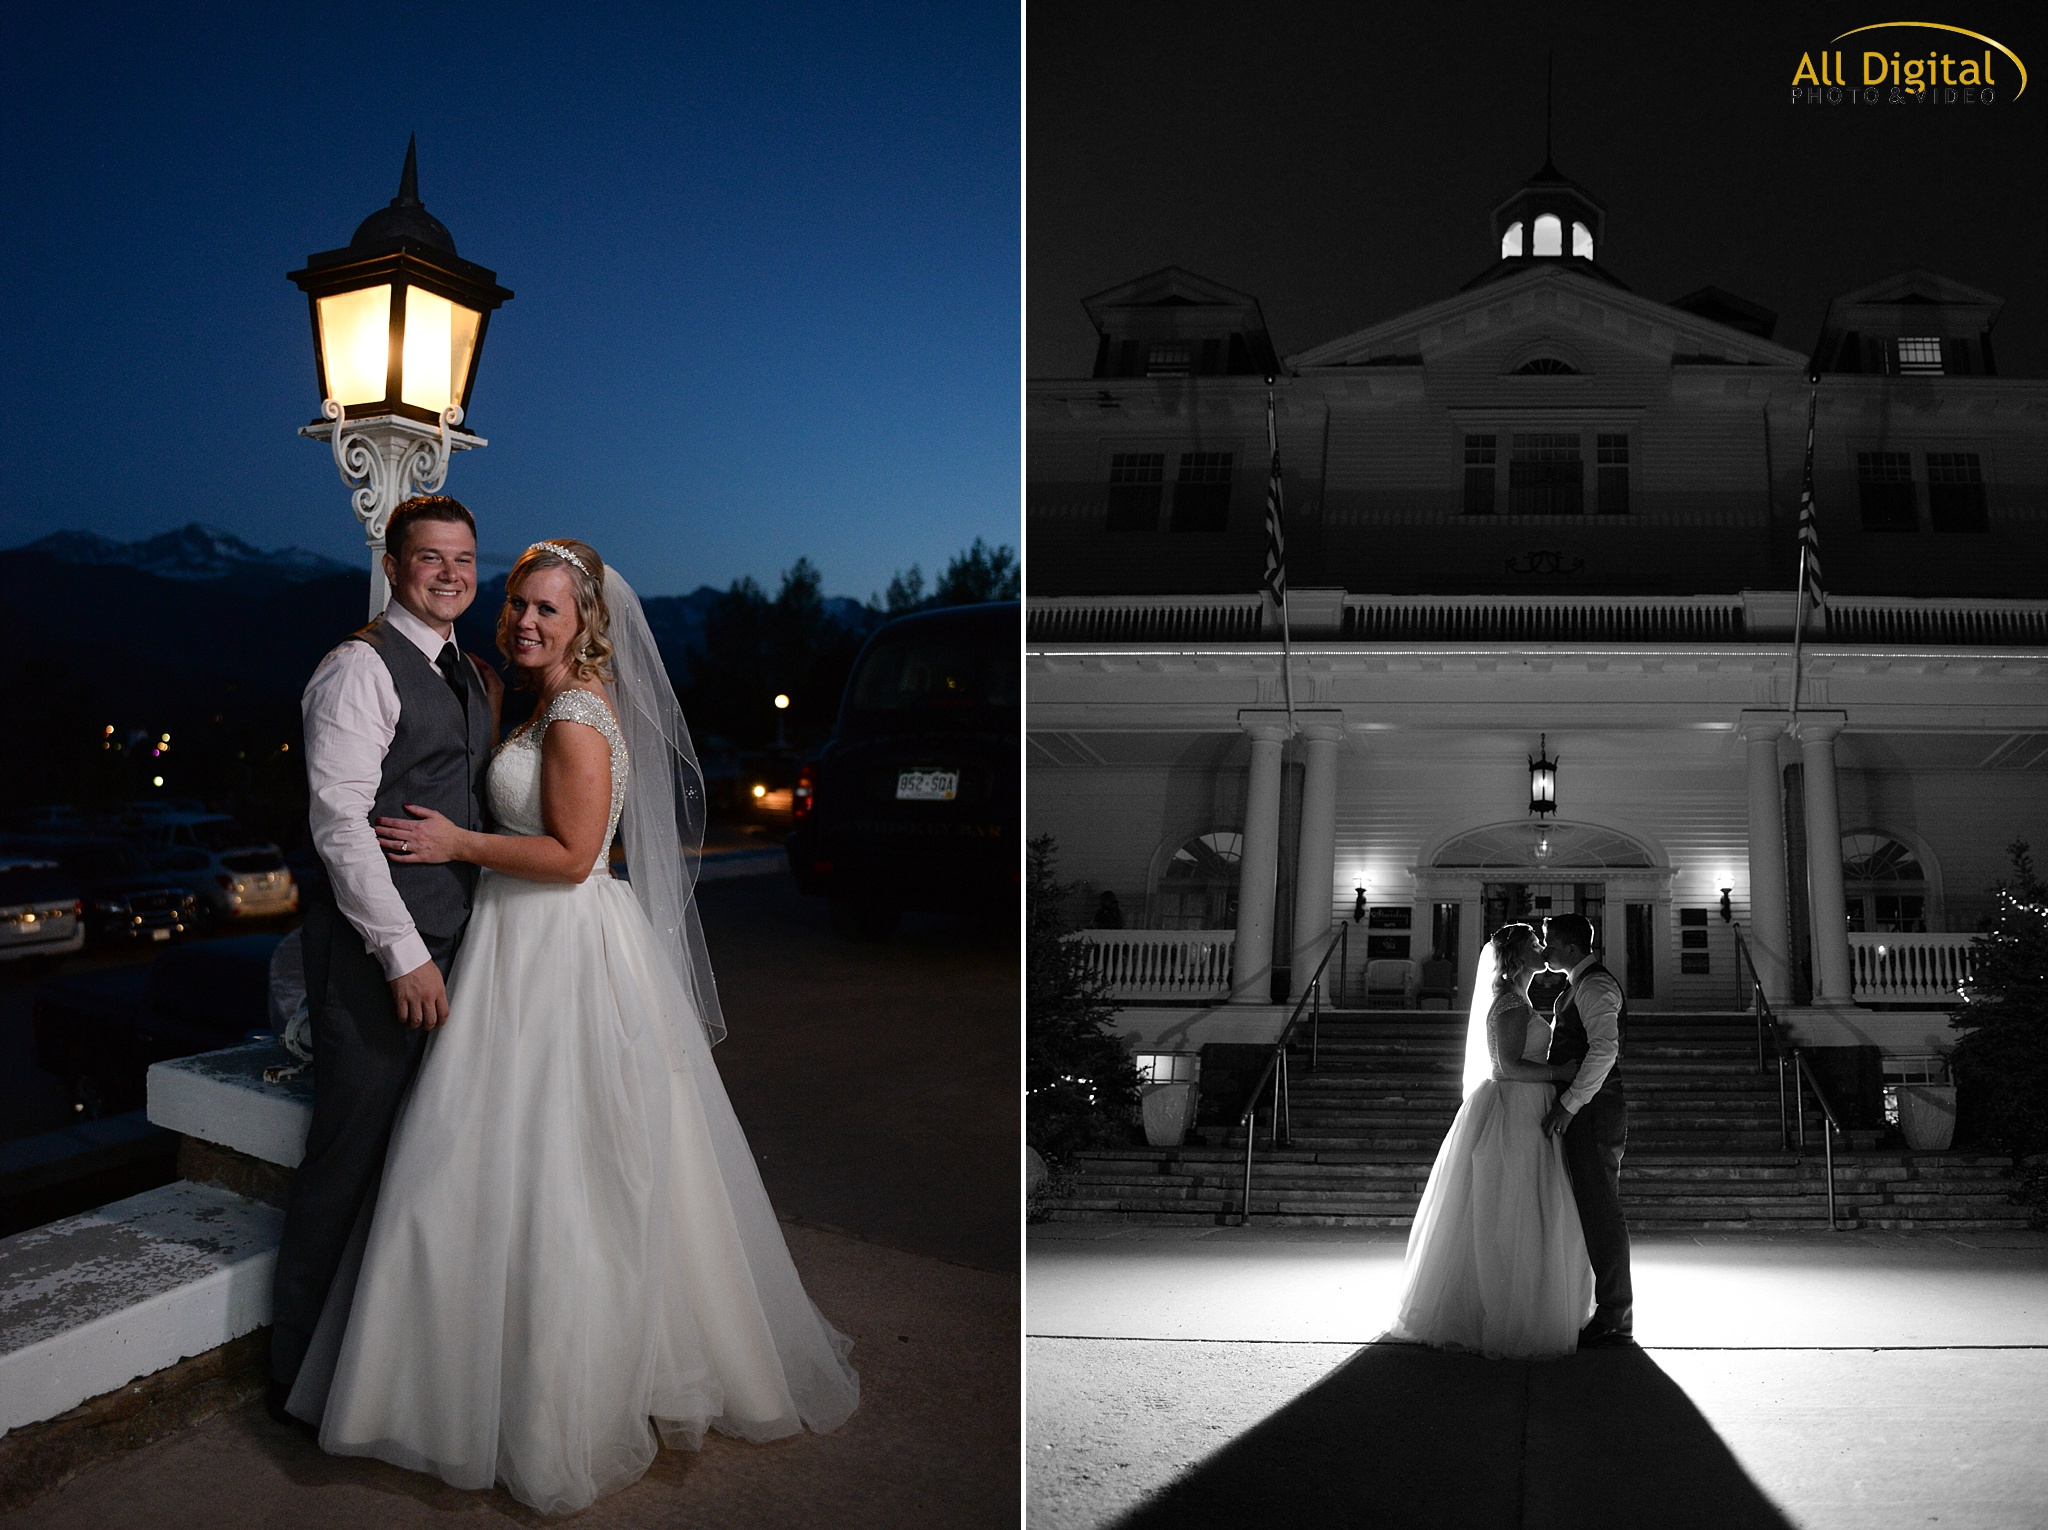 Alison & Brian's Portraits at the Stanley Hotel in Estes Park, Colorado.